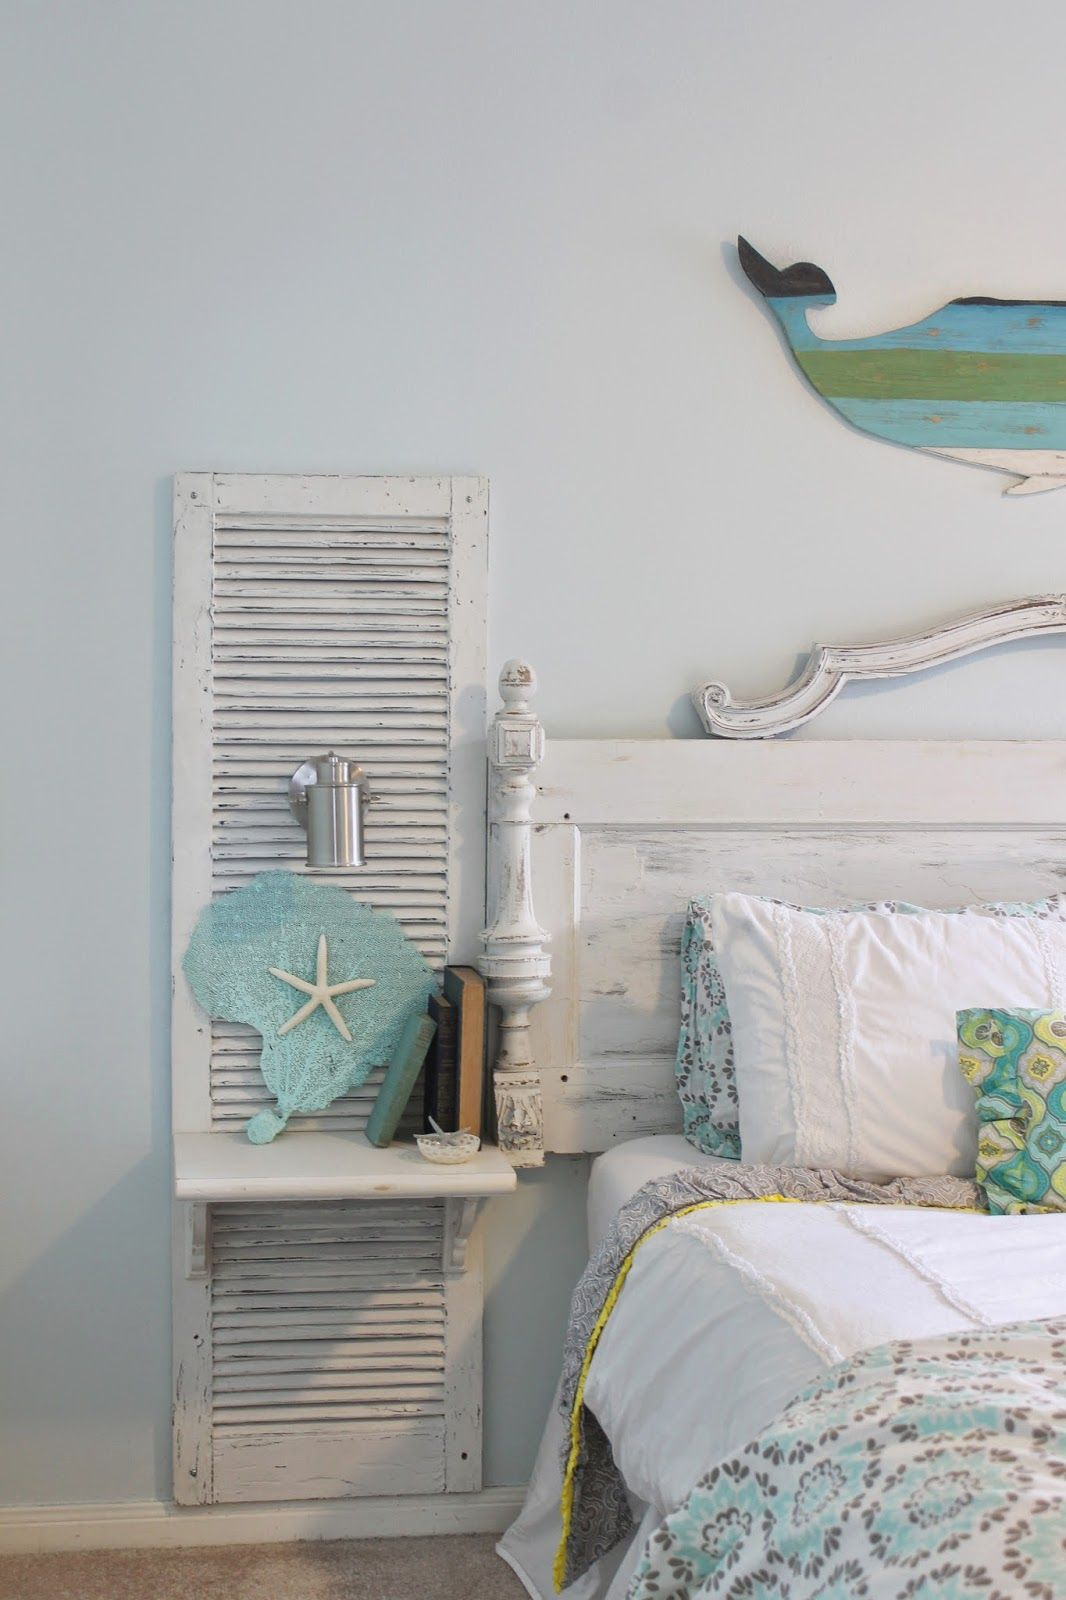 16 diy shabby chic decor ideas | diy projects - show dave